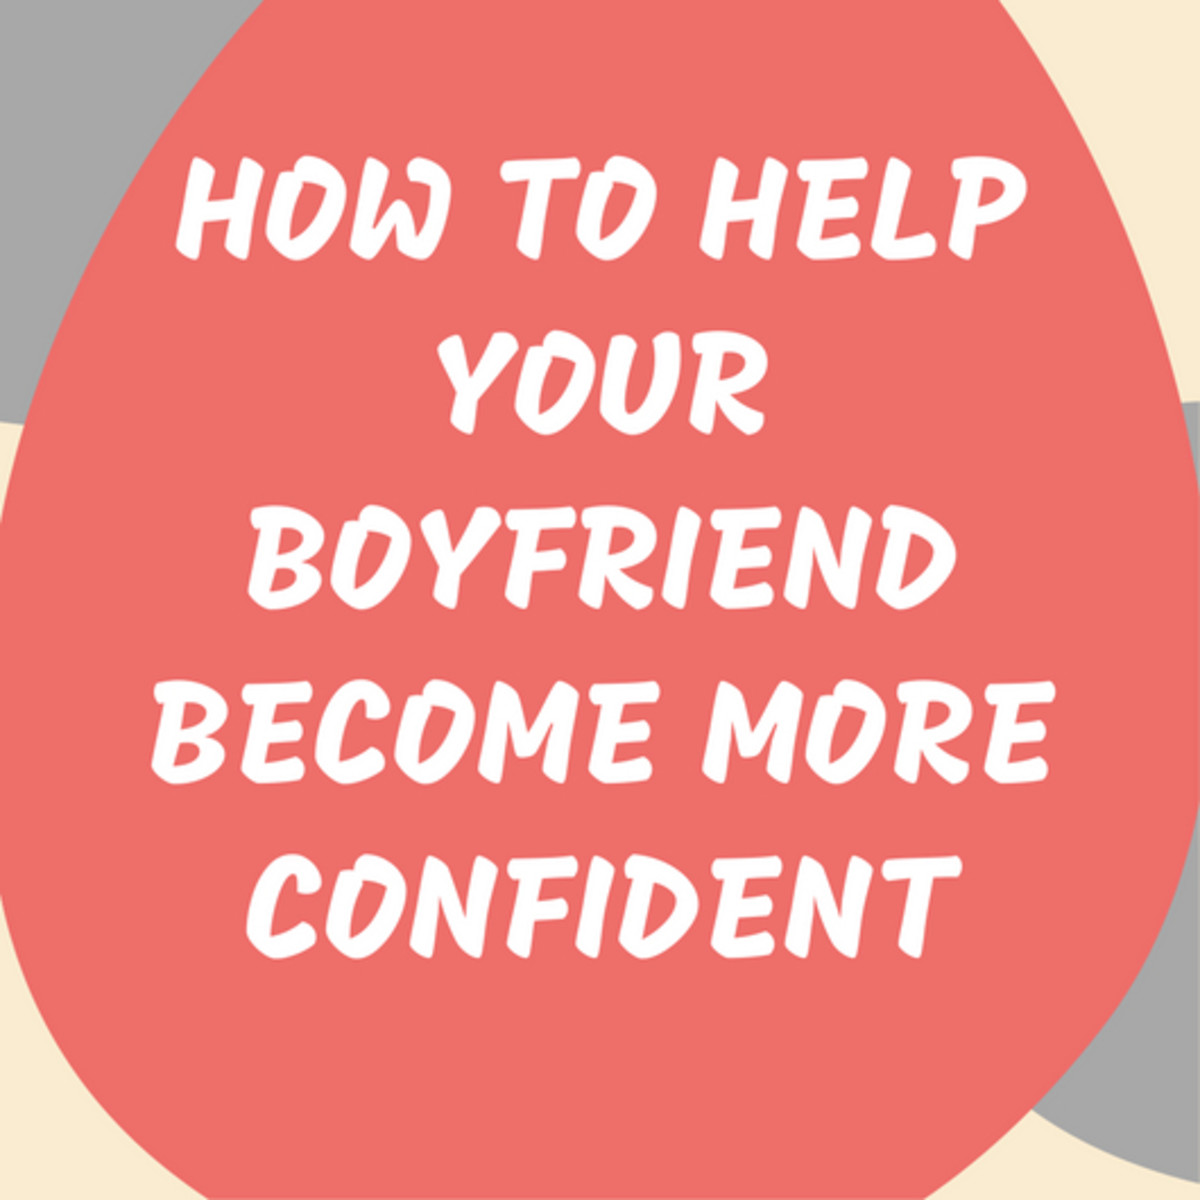 how-to-make-your-boyfriend-more-confident-getting-a-shy-guy-out-of-his-shell